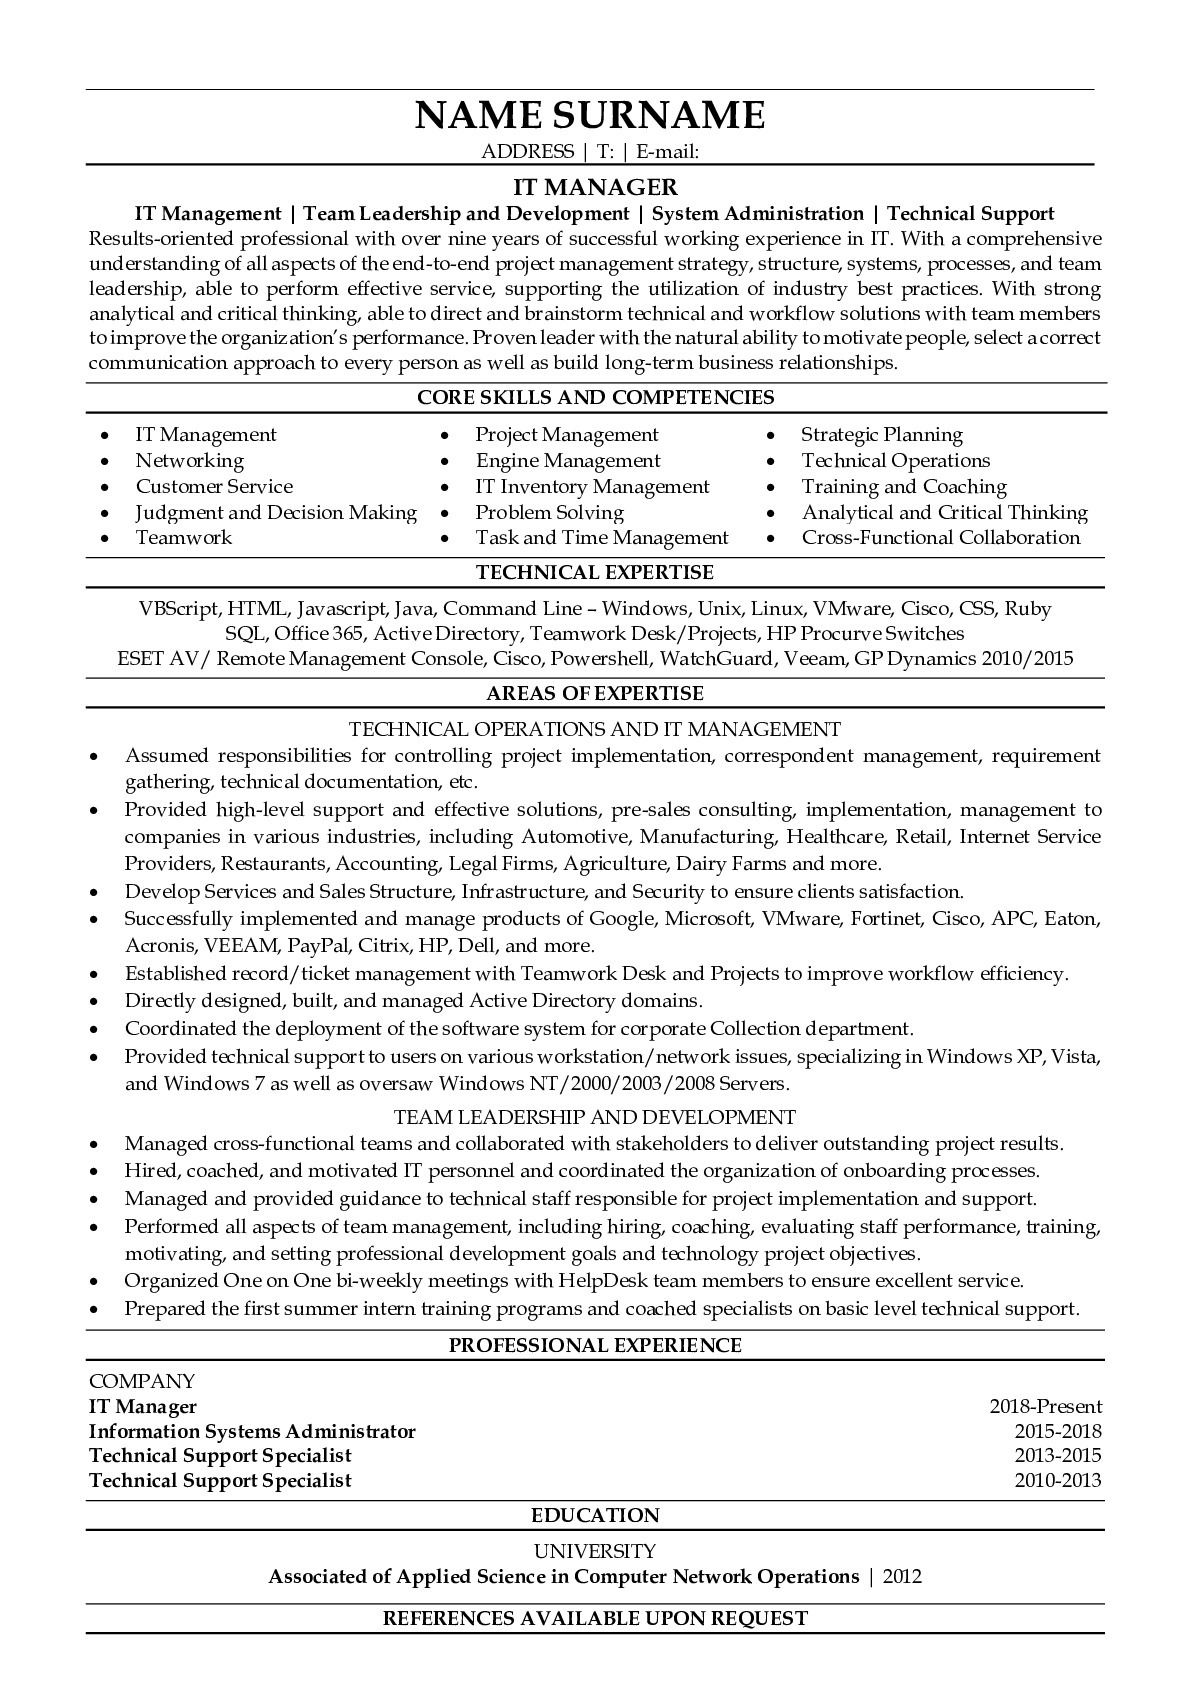 Resume Example for IT manager